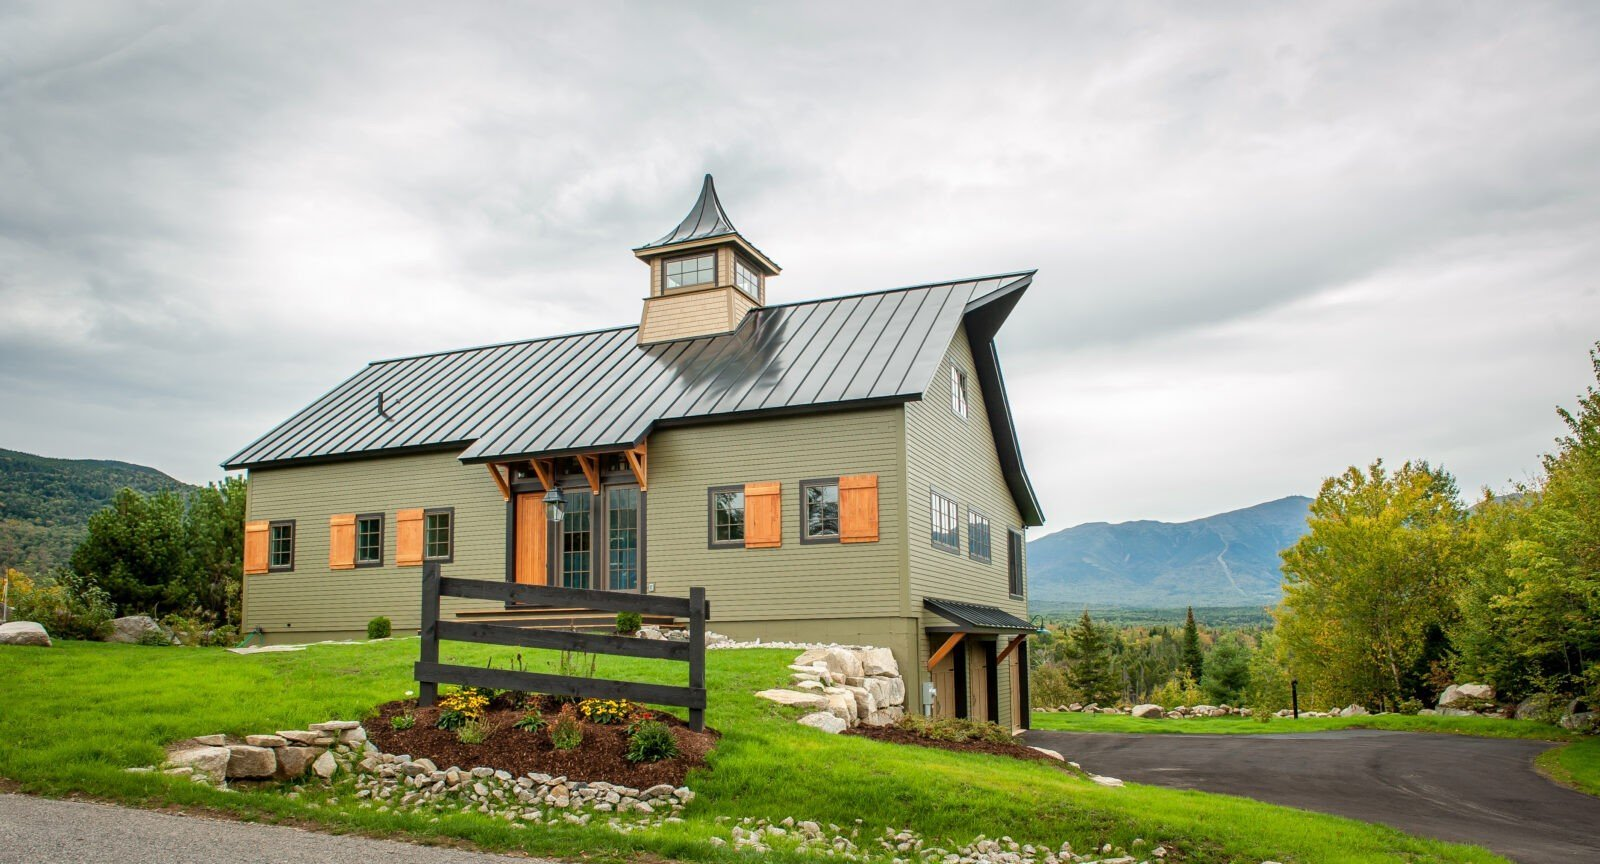 Top notch barn home plans from the ybh design team for Simple barn home plans